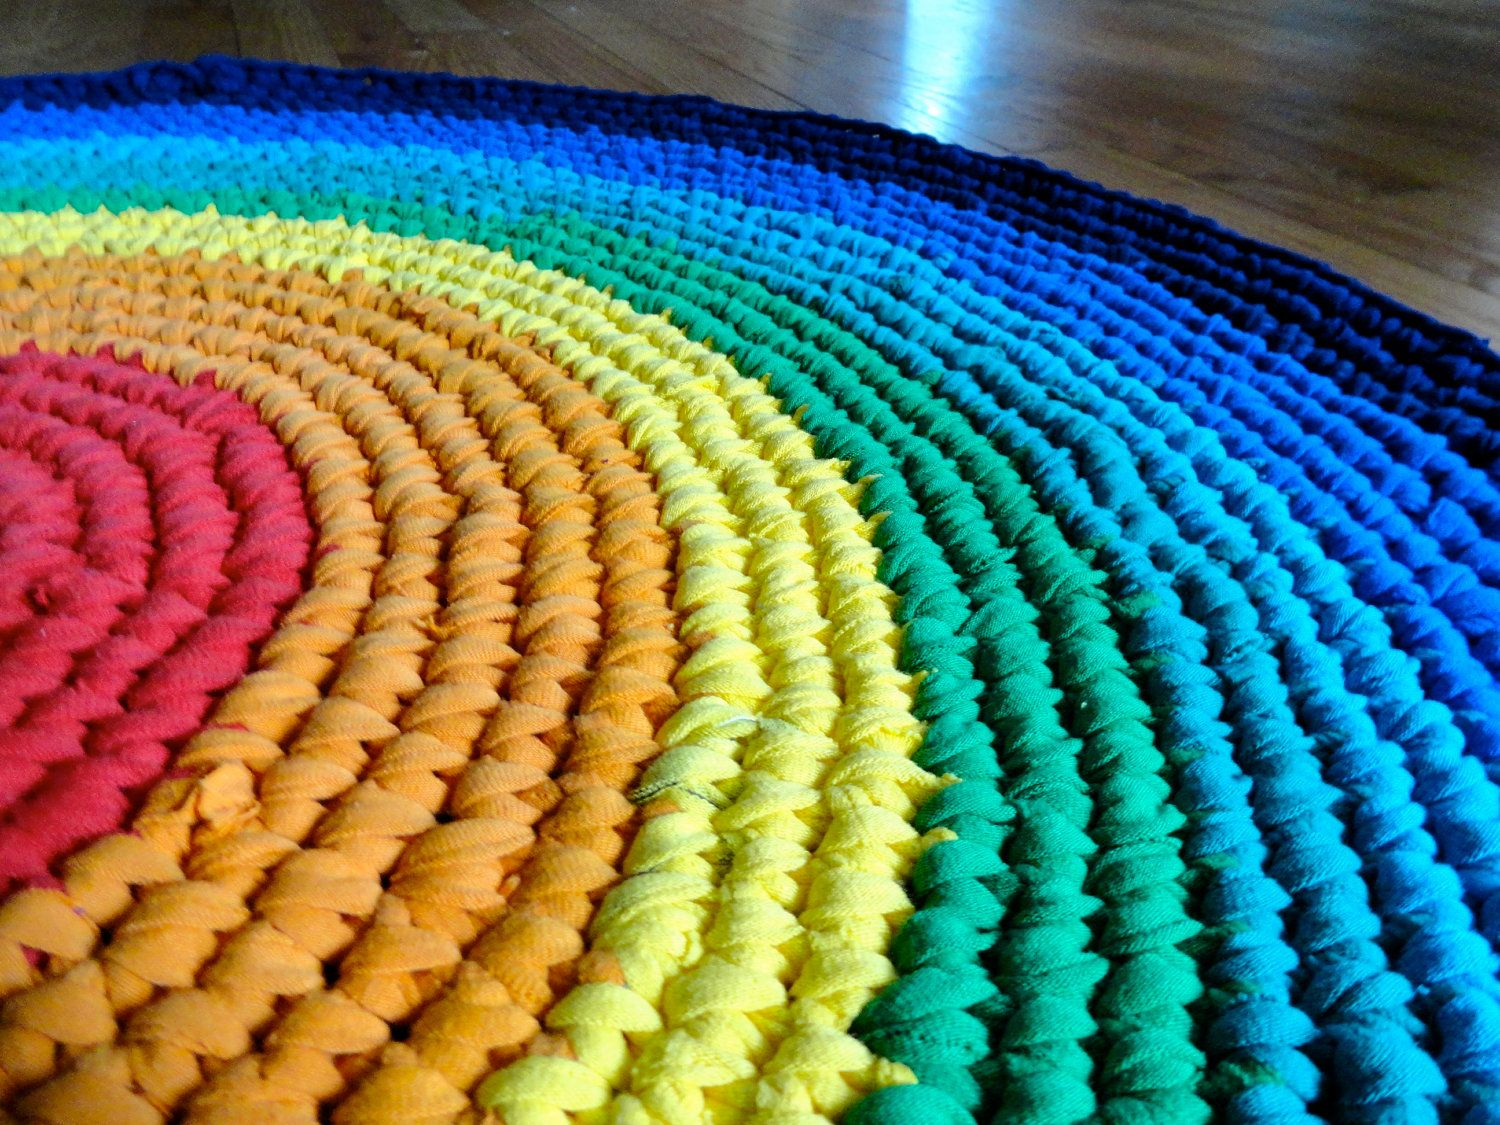 Rainbow Recycled TShirt Rag Rug Crocheted by HandmadeMichelle